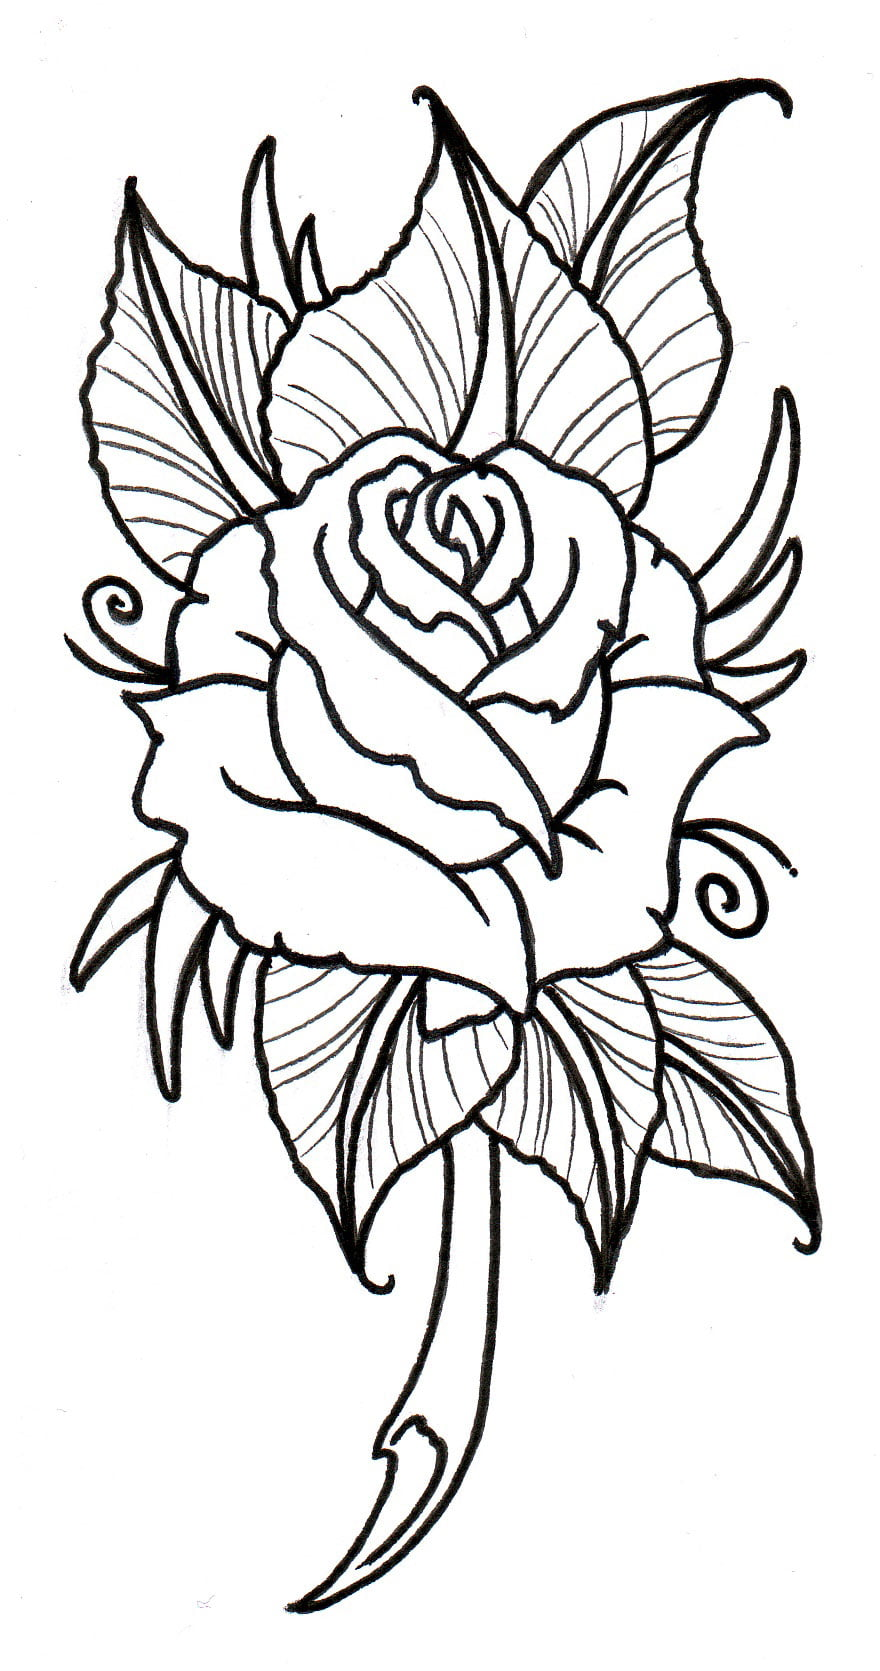 Free rose tattoos designs cool tattoos bonbaden for Rose tattoo patterns